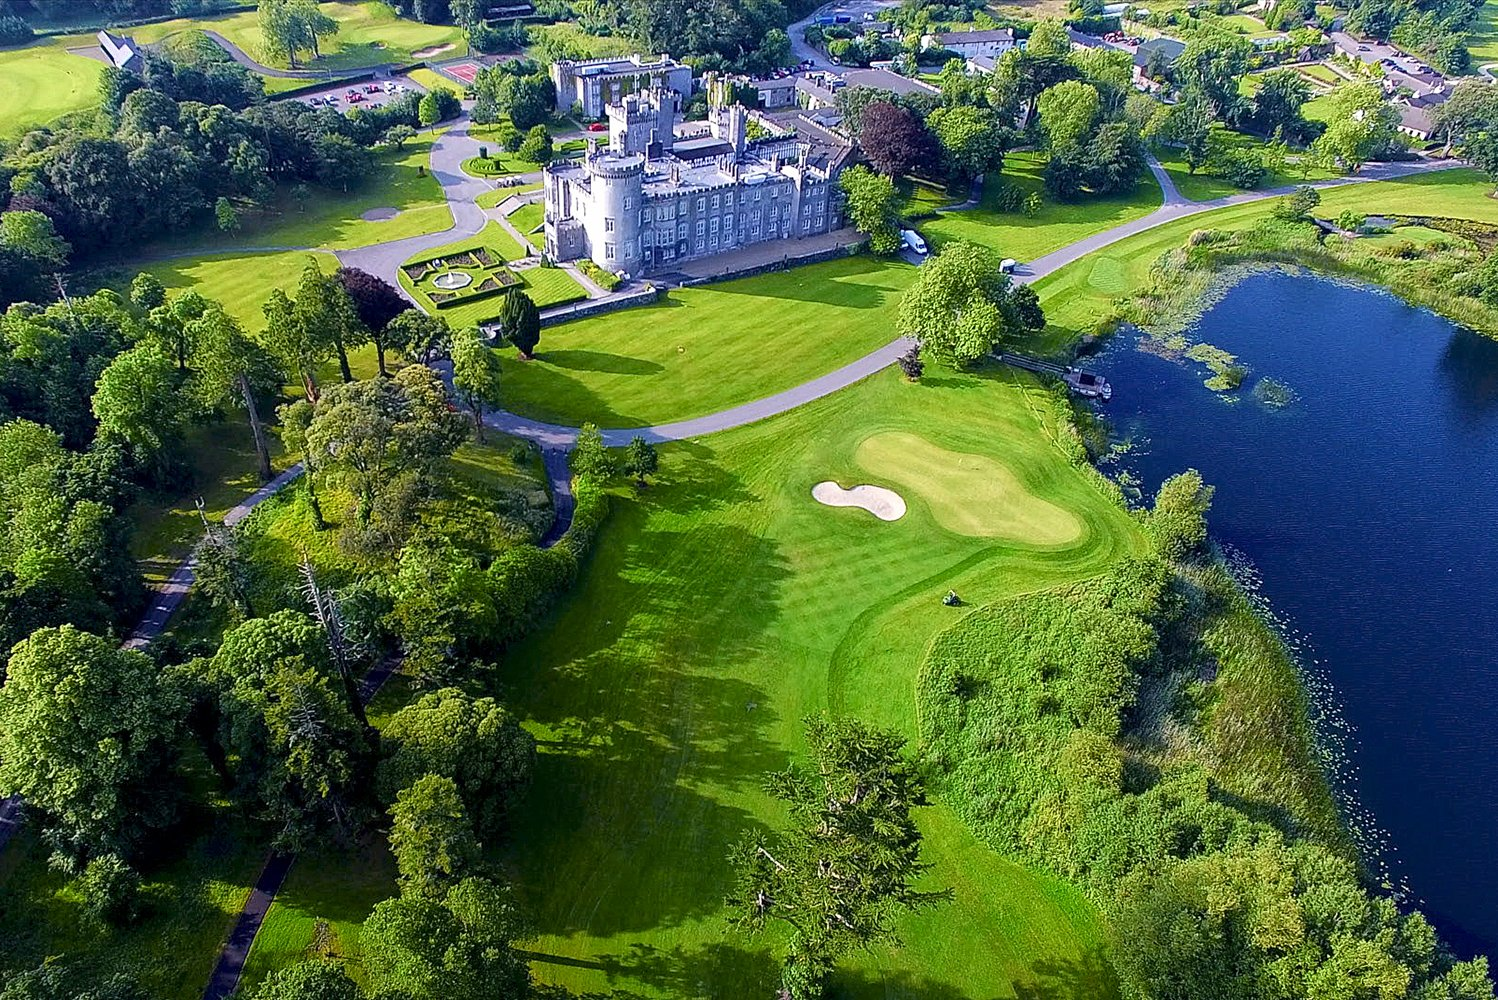 The property is surrounded by over 450 acres of scenery, including a parkland golf course.